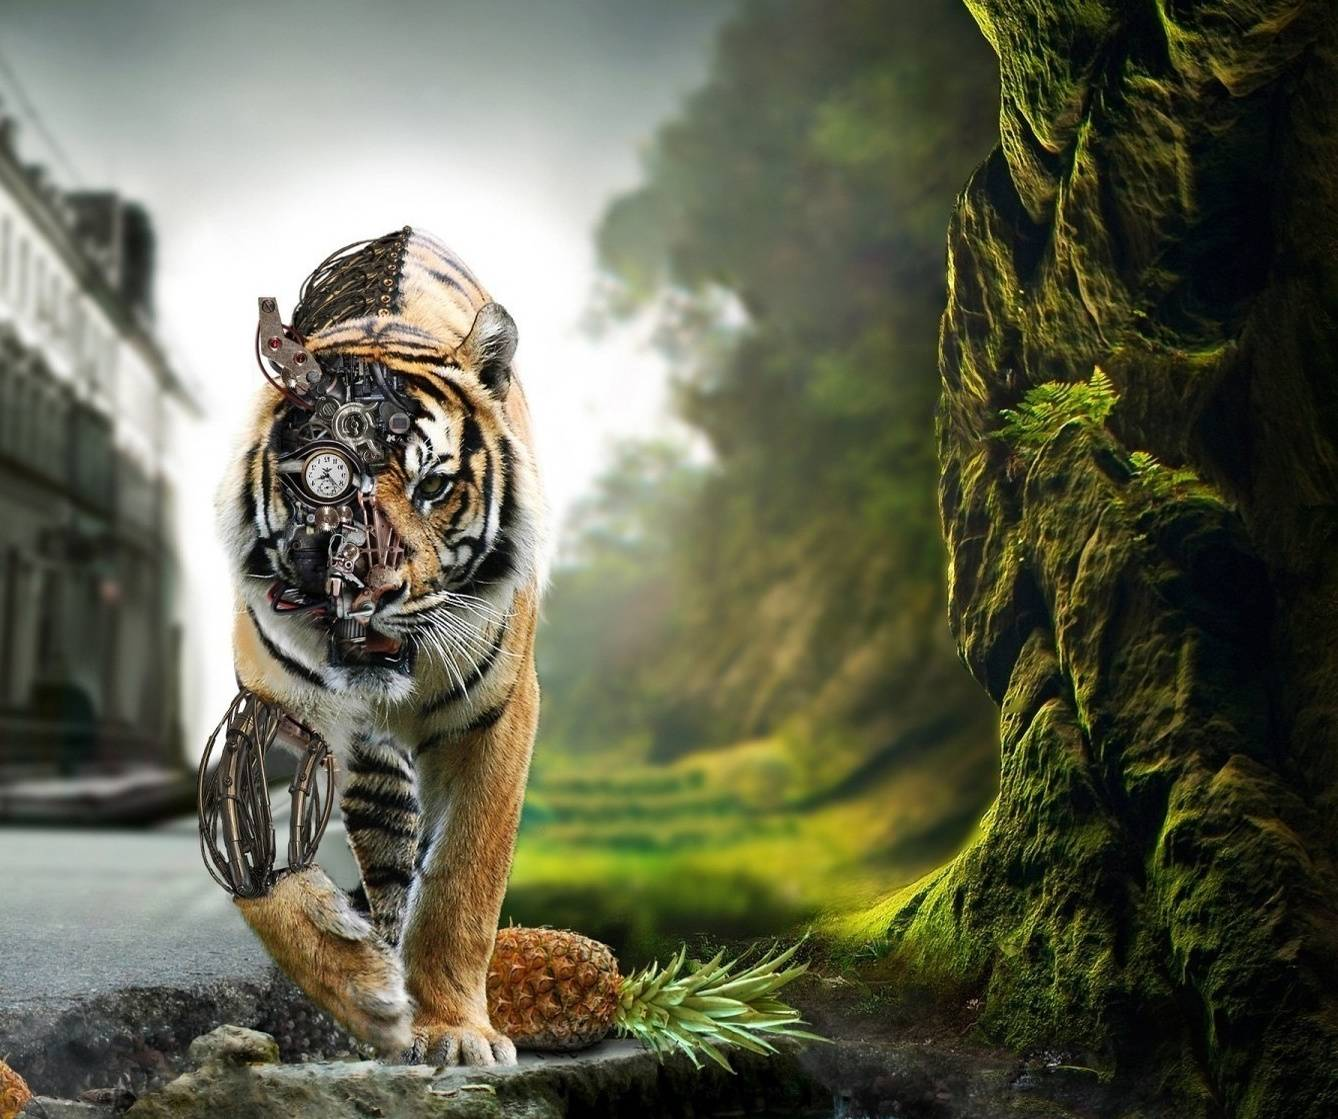 Hd 1600x900 Wallpaper: Mechanical Tiger Wallpaper By Sphinxlars